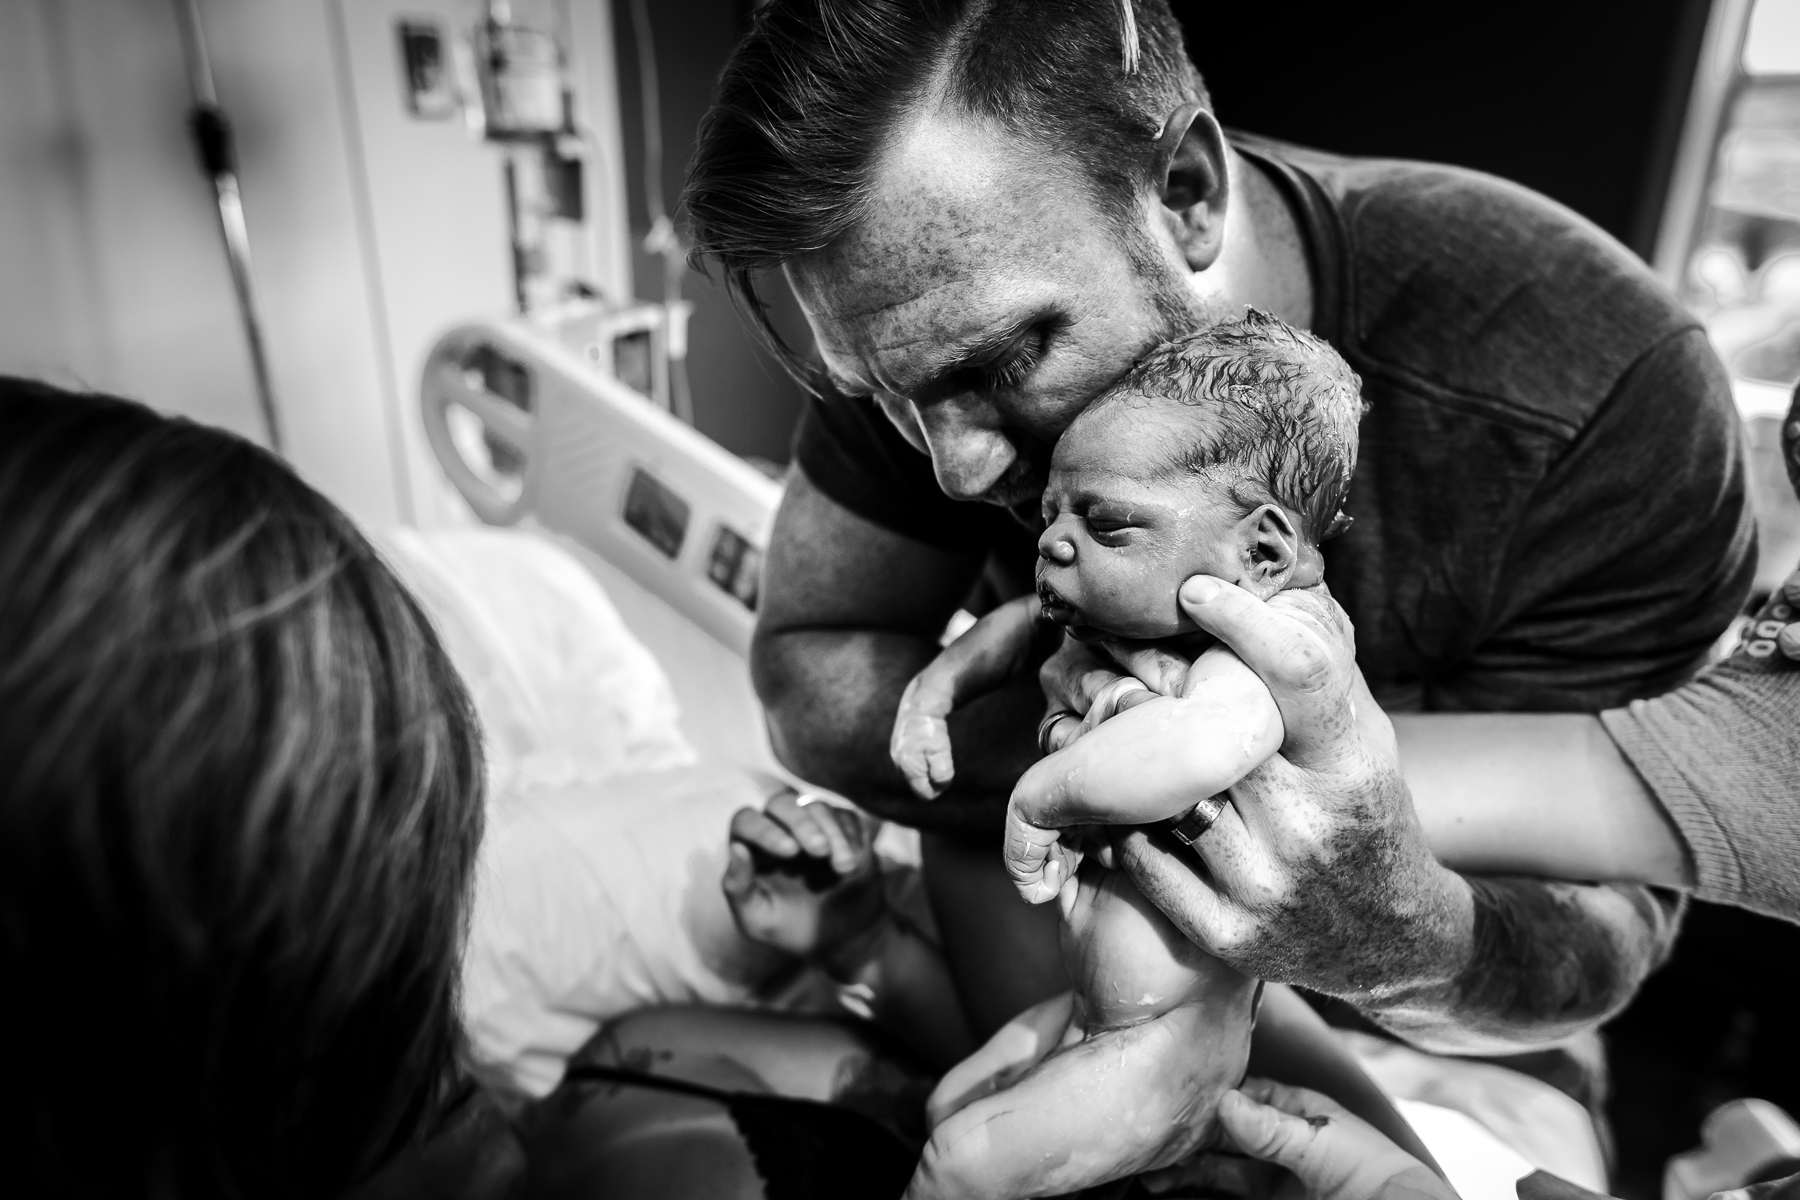 dad-catches-baby-birth-photography